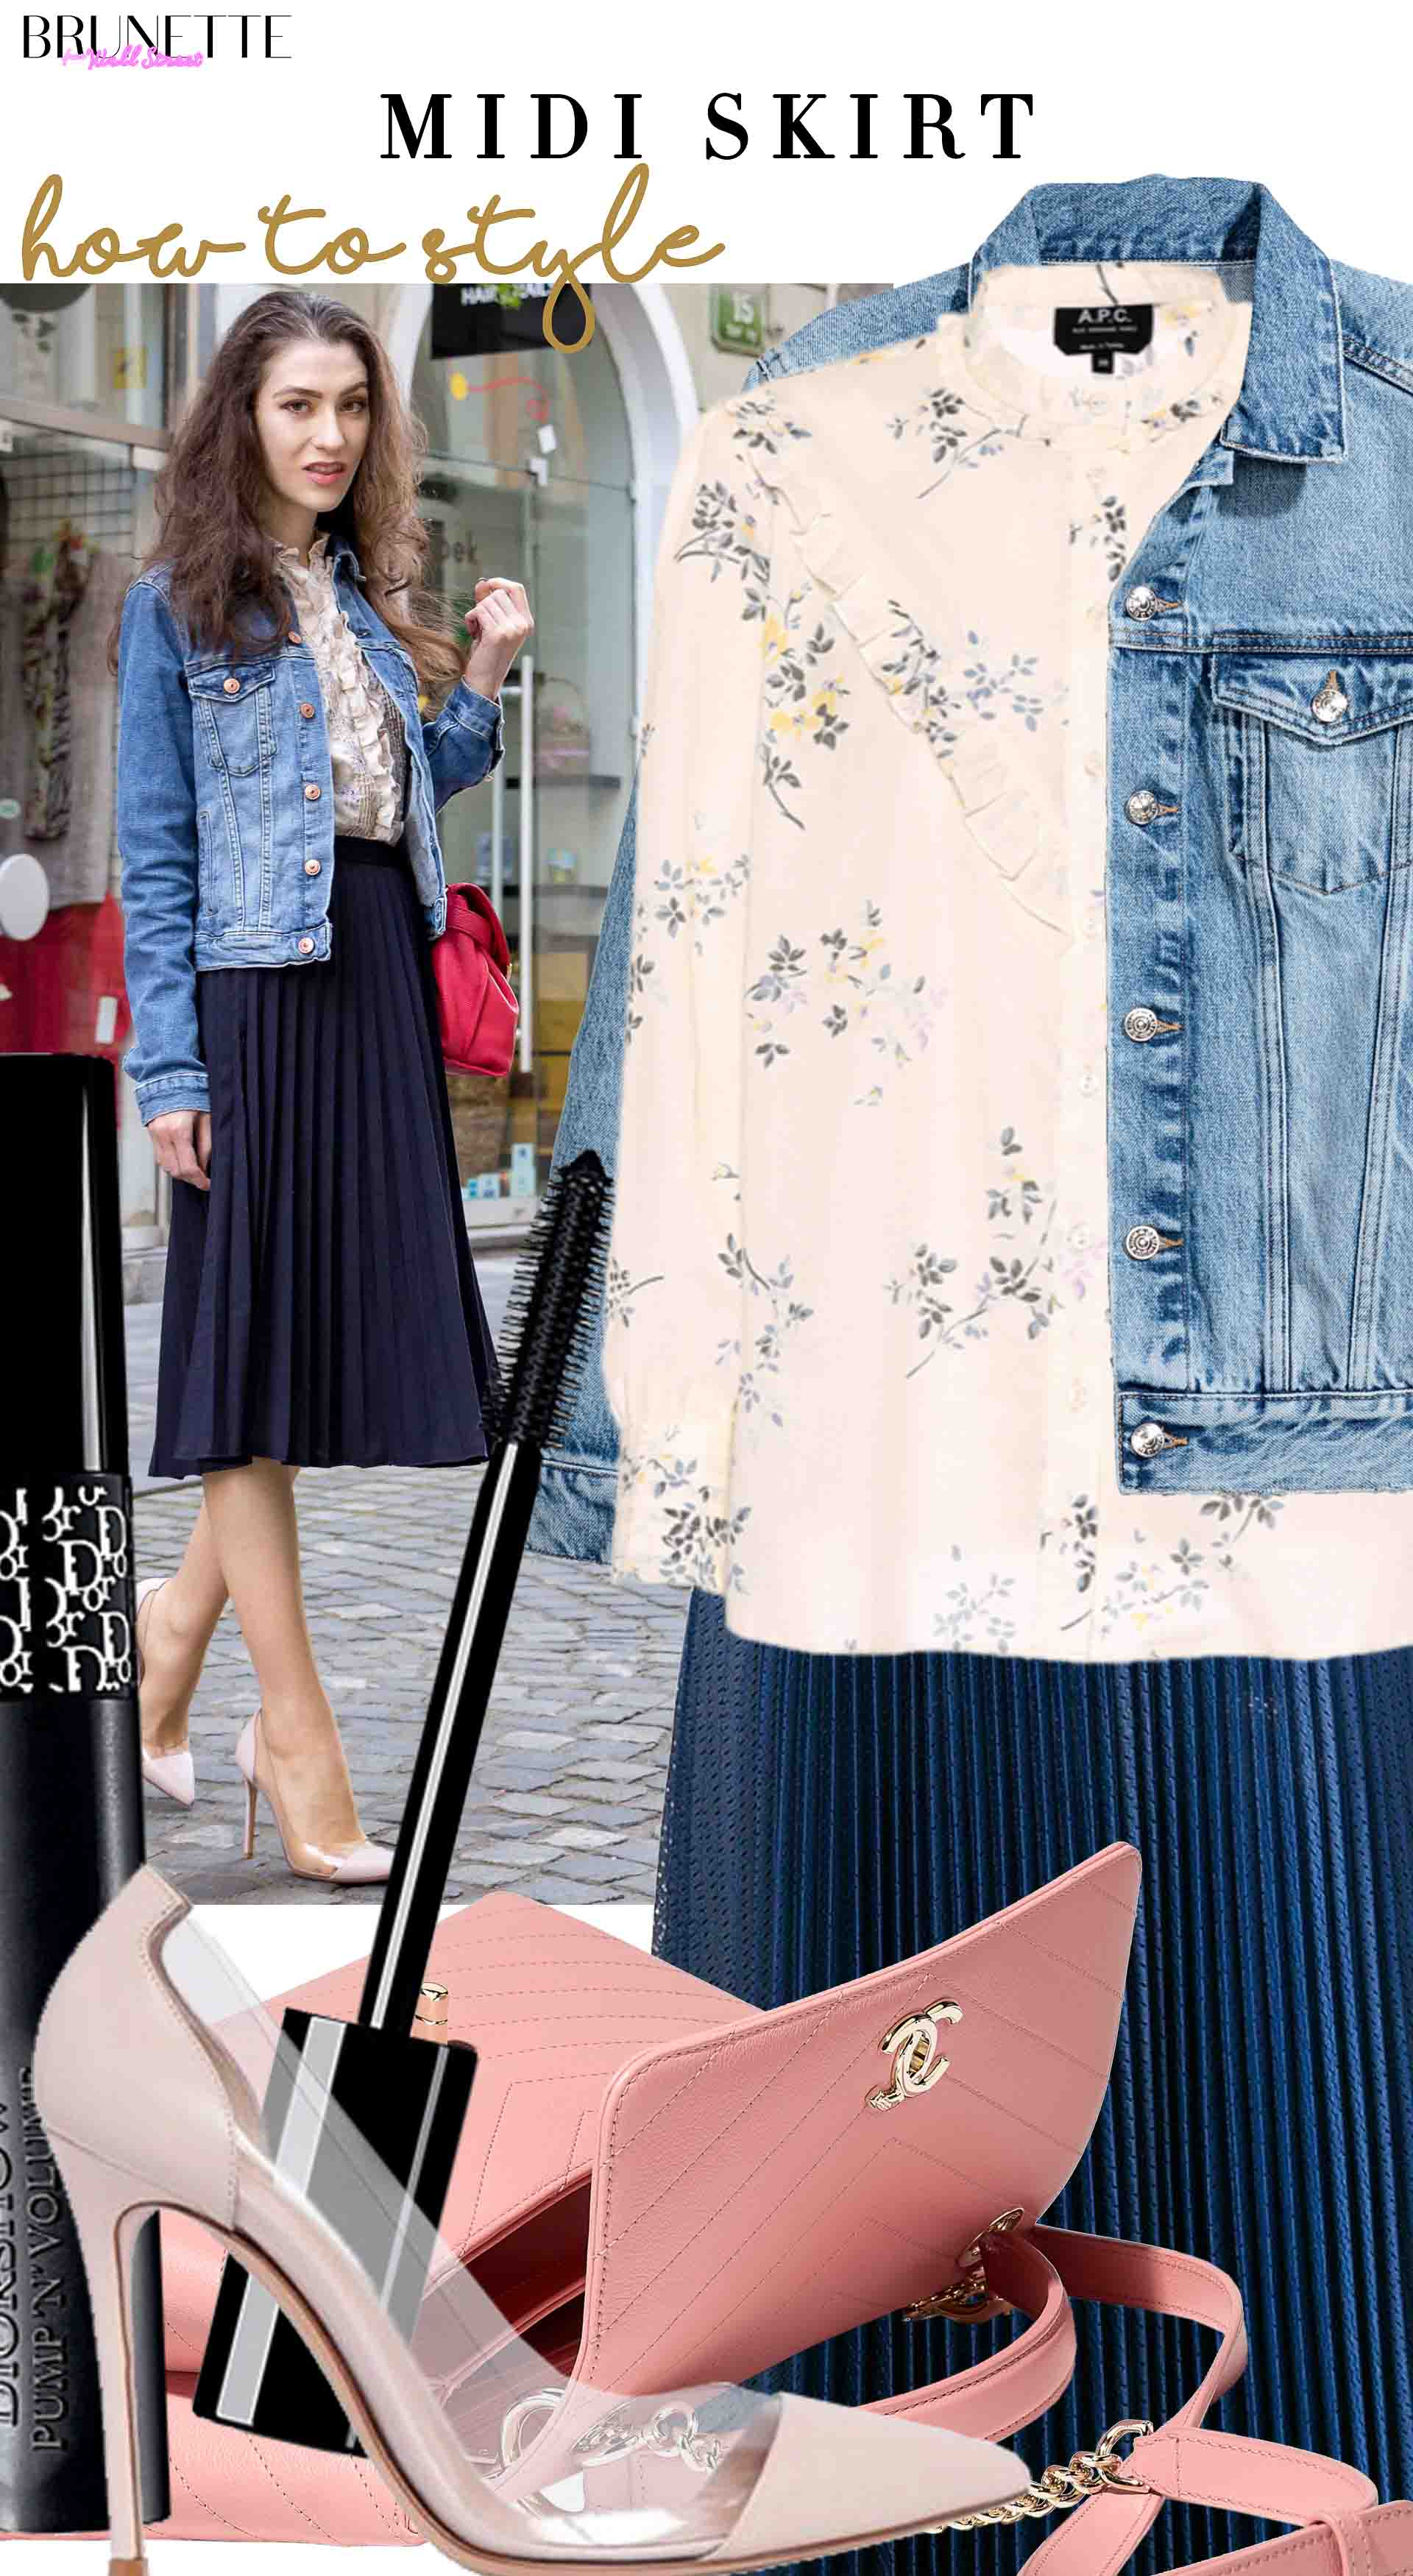 Brunette from Wall Street how to style midi skirt denim jacket plexi pumps